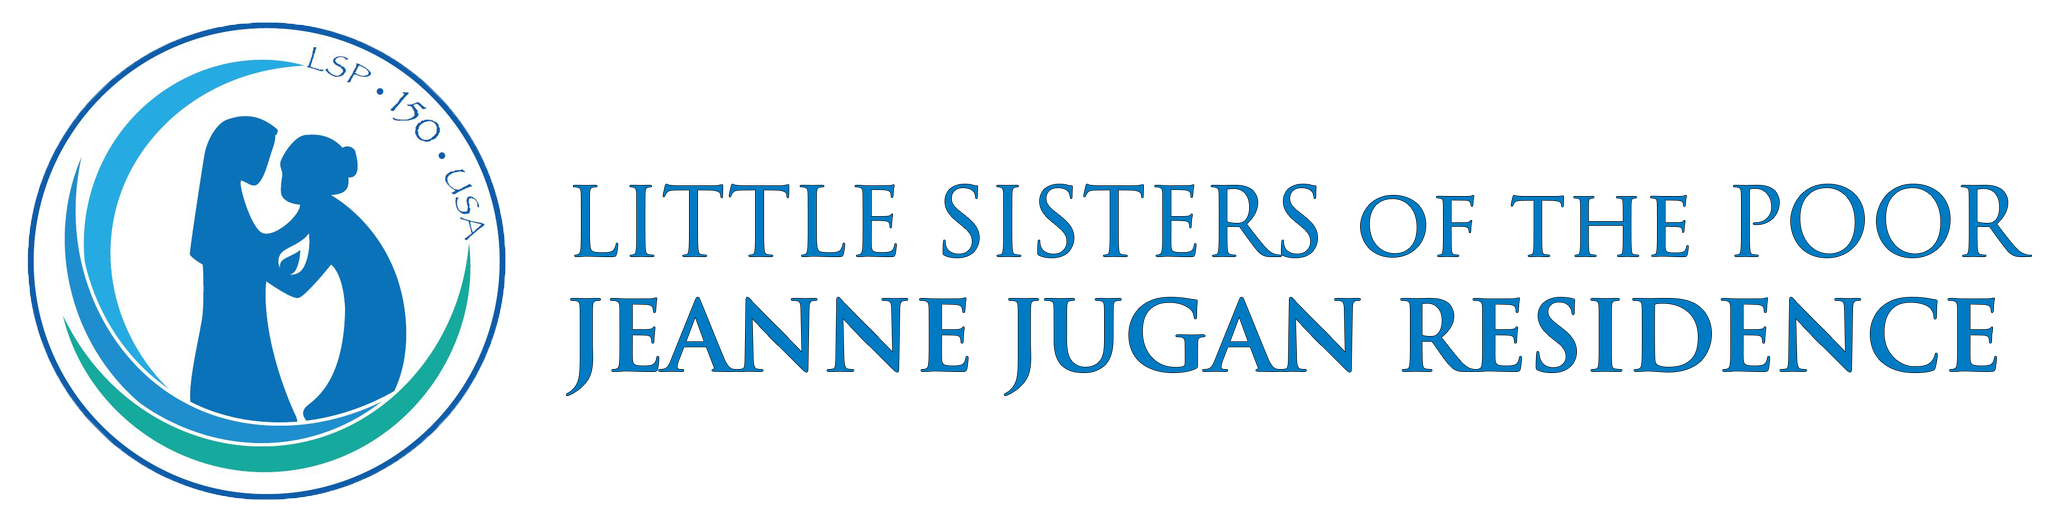 Little Sisters of the Poor Boston